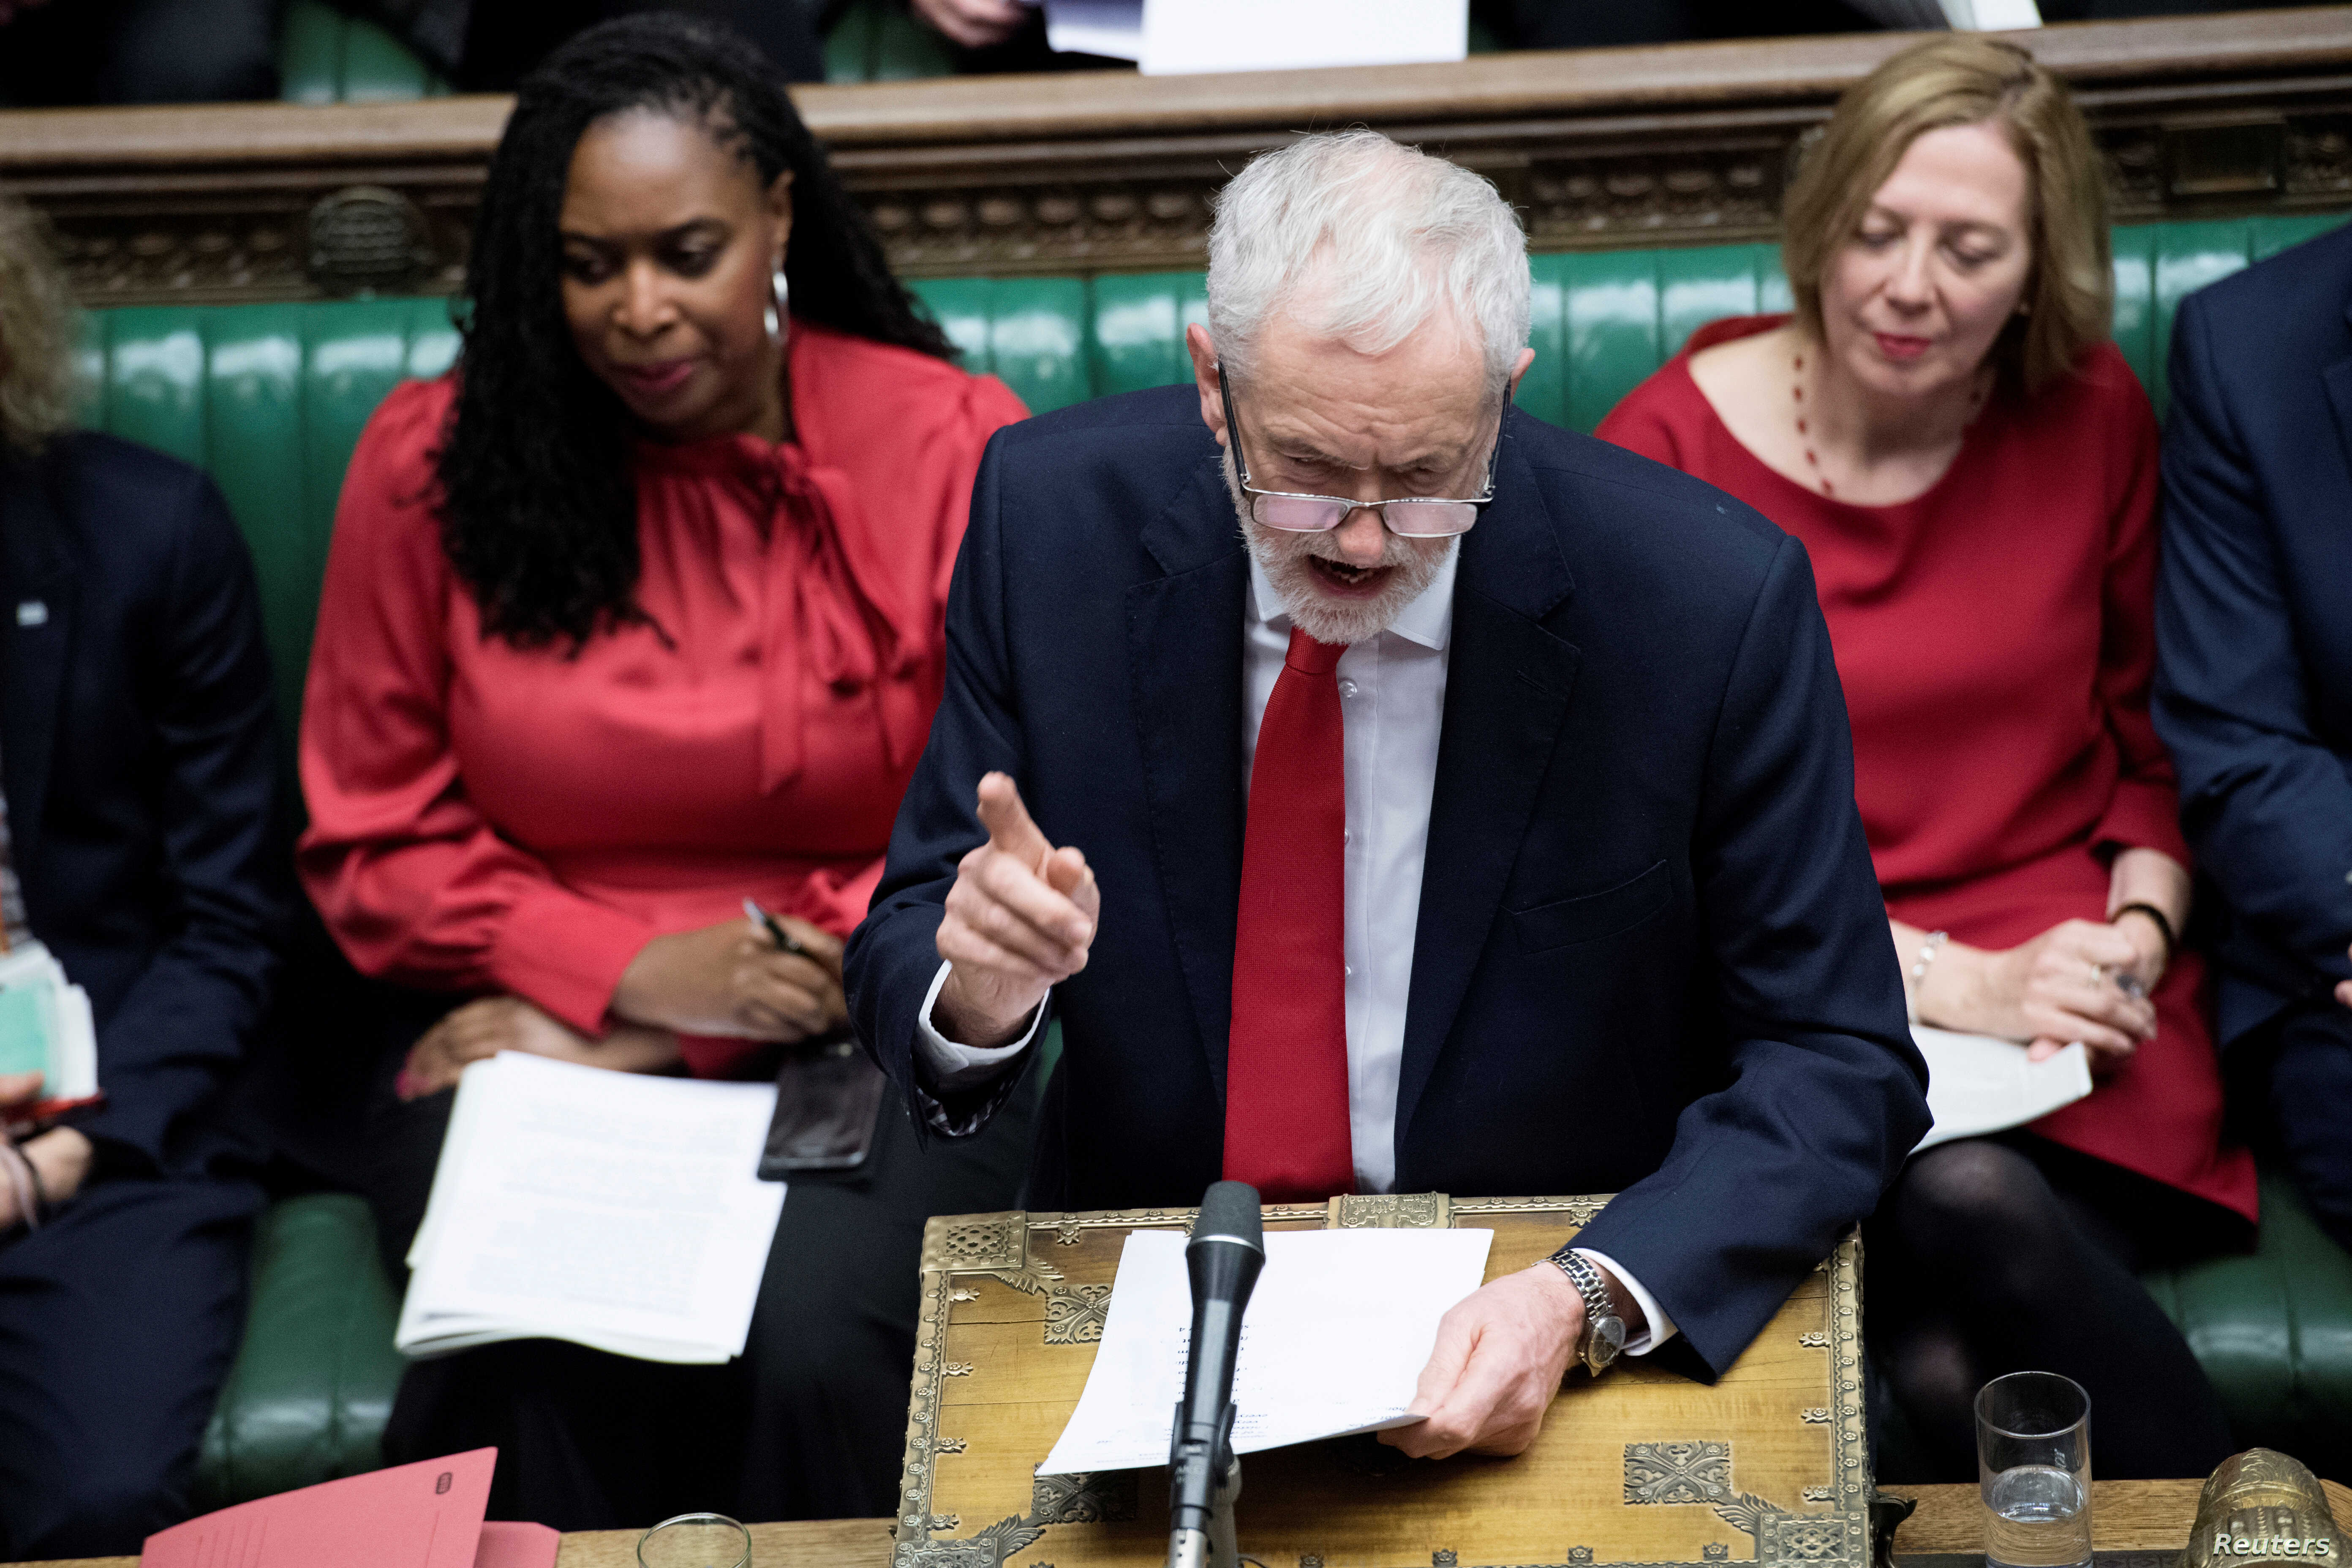 Jeremy Corbyn, Leader of the Labor Party, talks during a no-confidence debate after Parliament rejected Theresa May's Brexit deal, in London, Jan. 16, 2019.